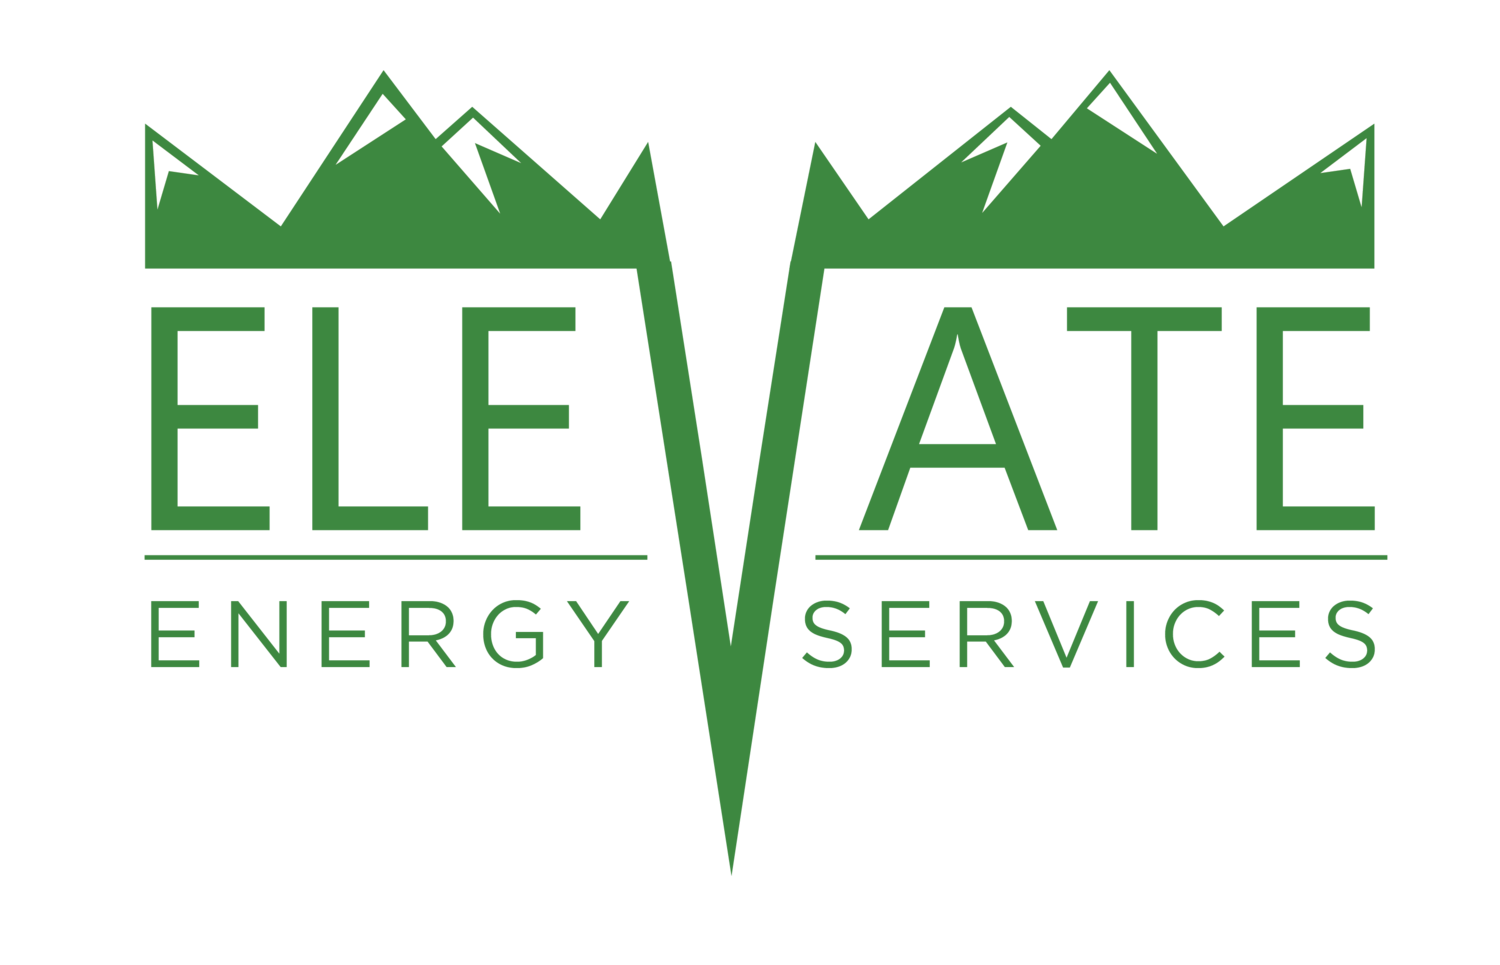 Elevate Energy Services